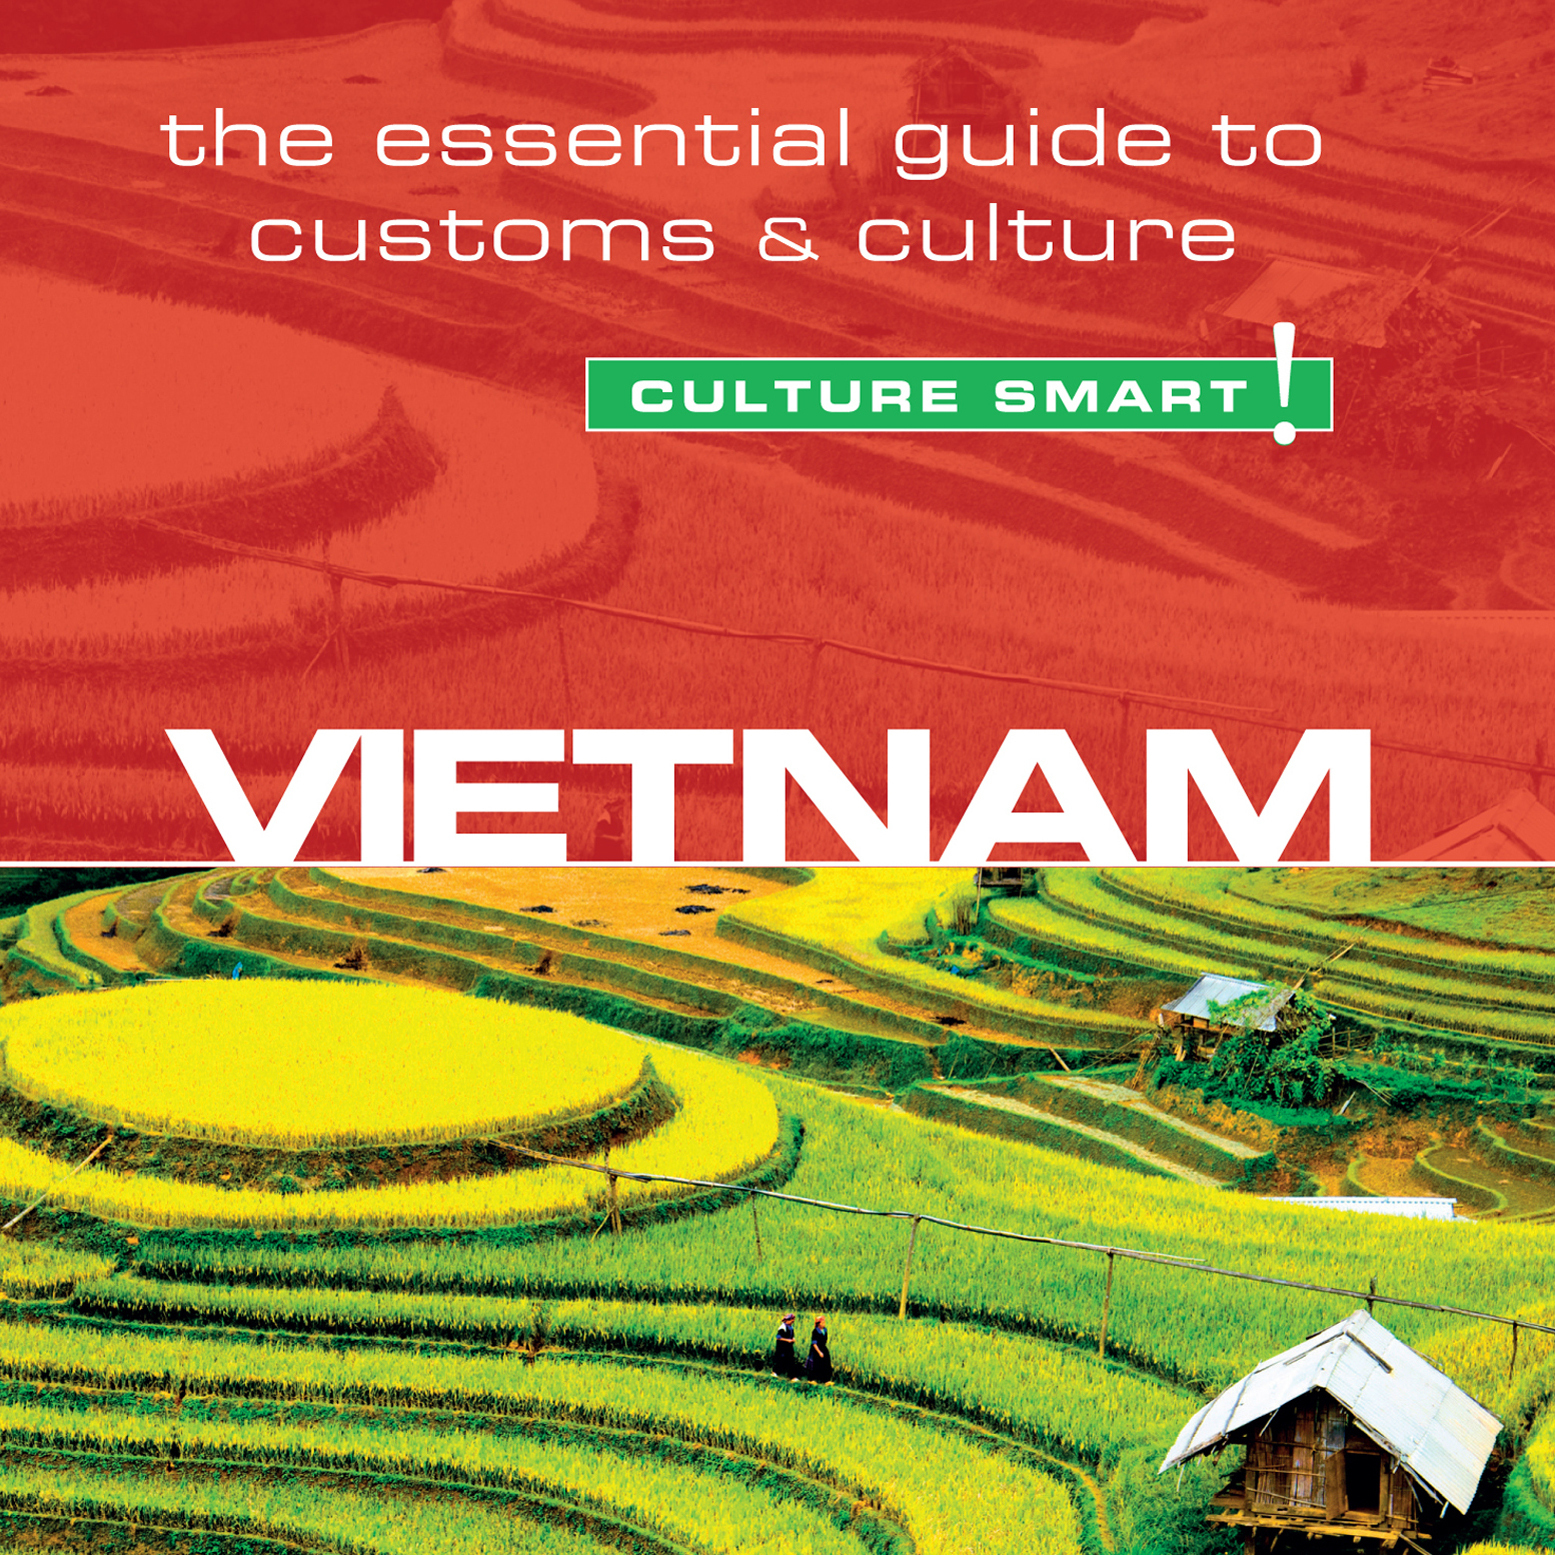 Vietnam Culture Smart Audiobook Listen Instantly